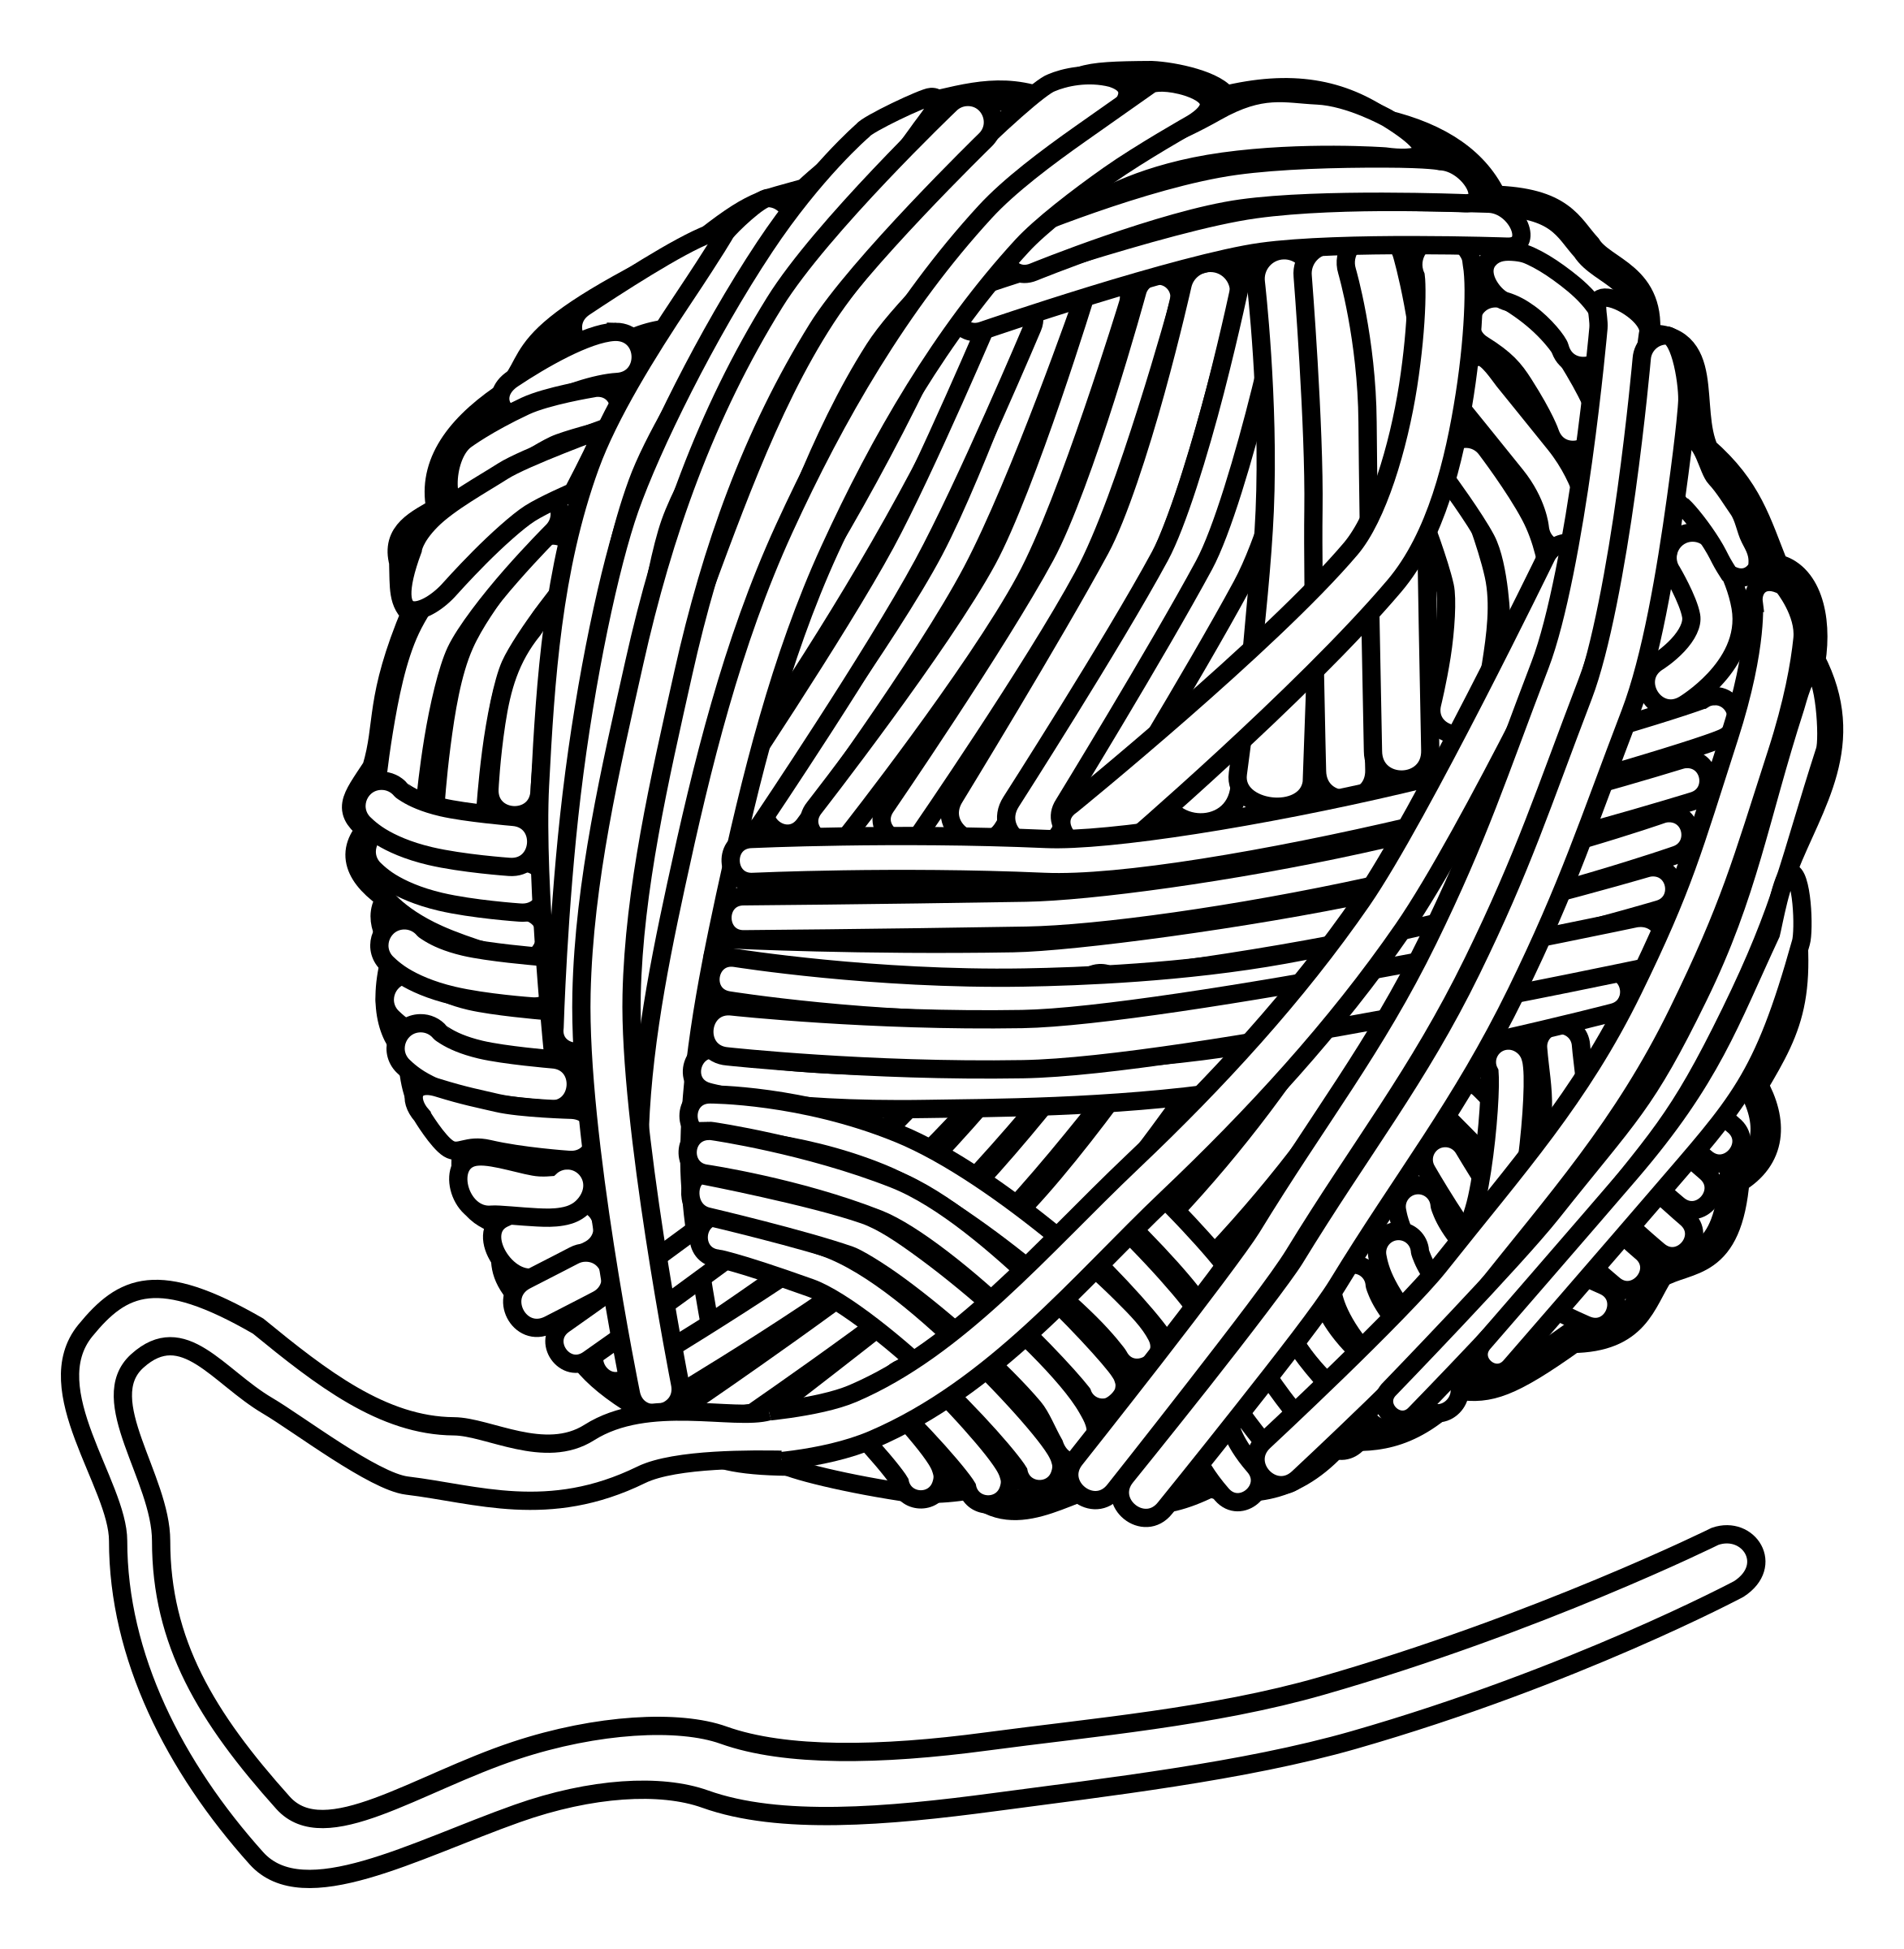 Wool ball clipart vector royalty free download Free Wool Cliparts, Download Free Clip Art, Free Clip Art on ... vector royalty free download